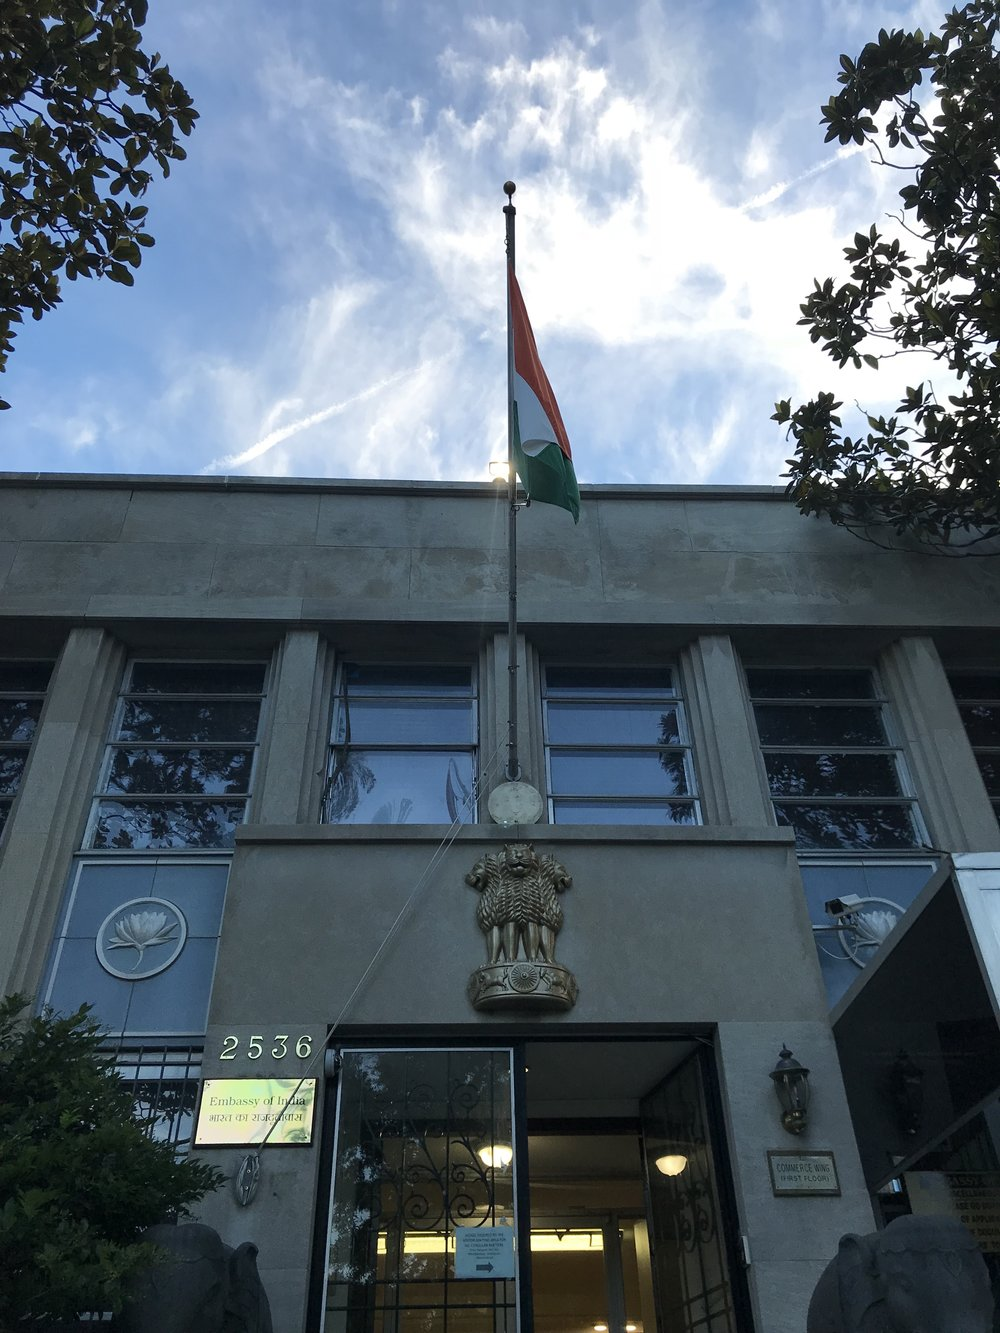 The Consular Office of the Embassy of India.